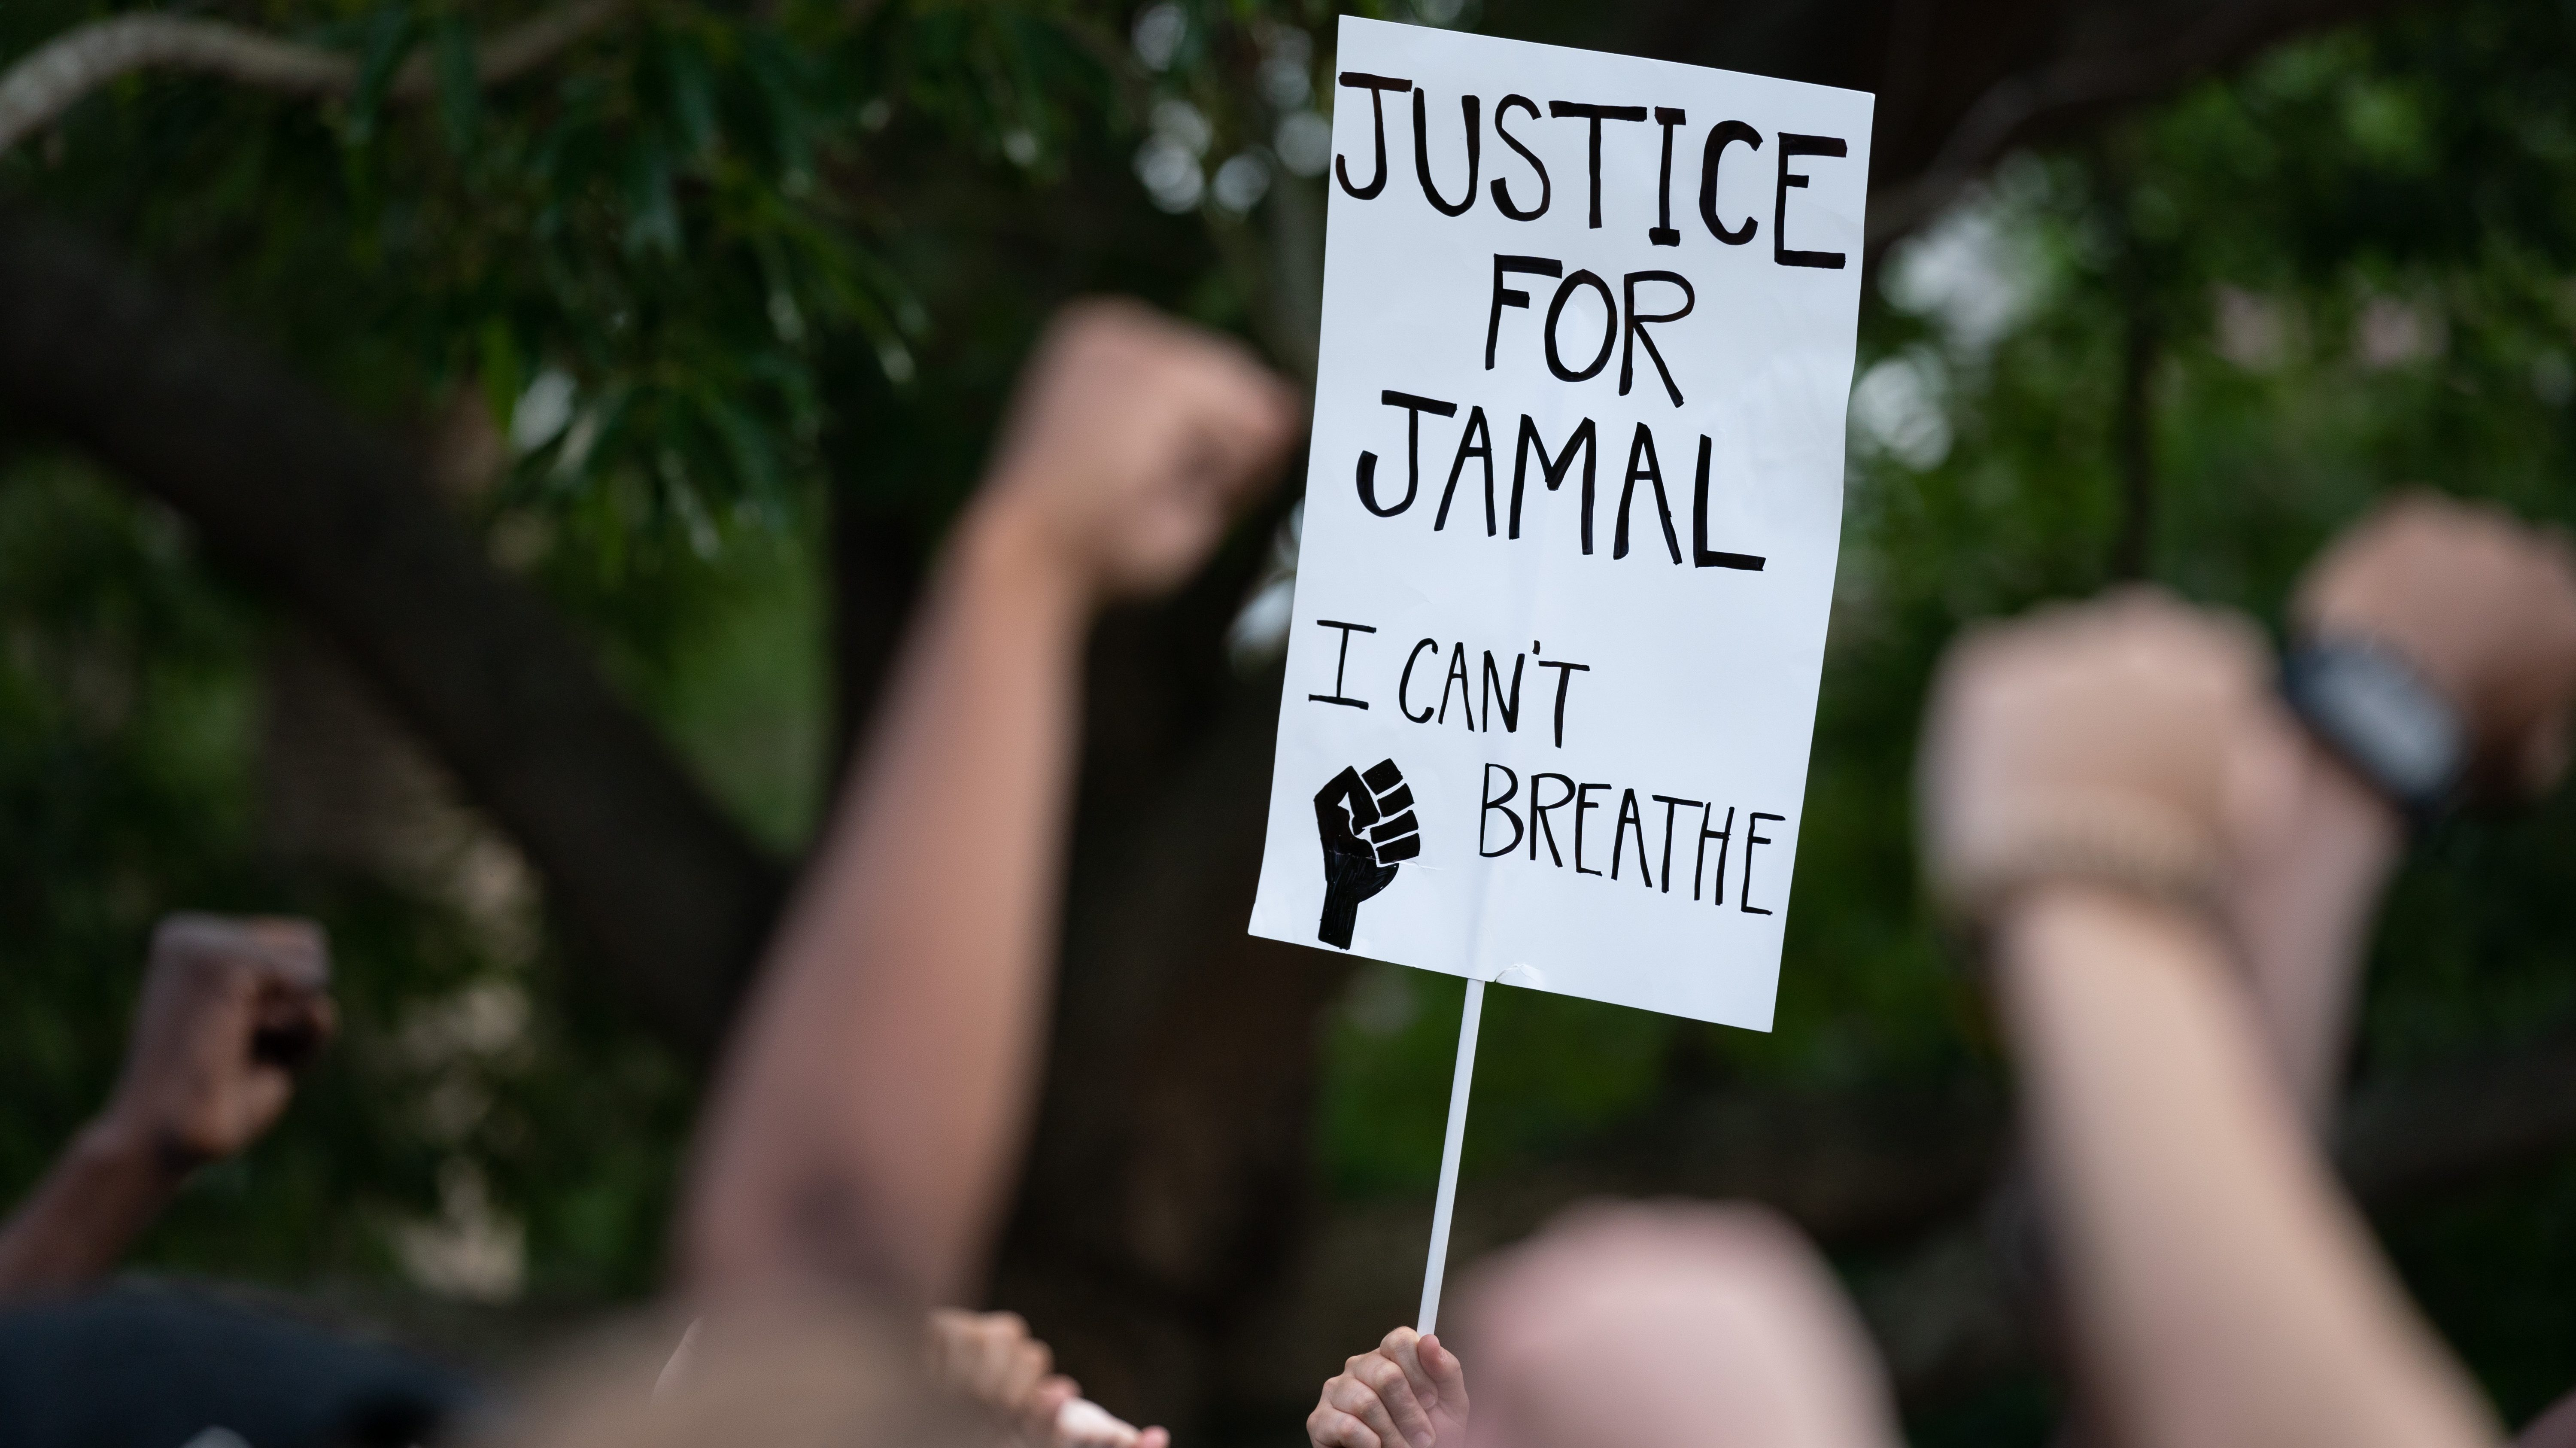 Protest Held Against Sheriff's Office In Charleston In Death Of Mentally Ill Man